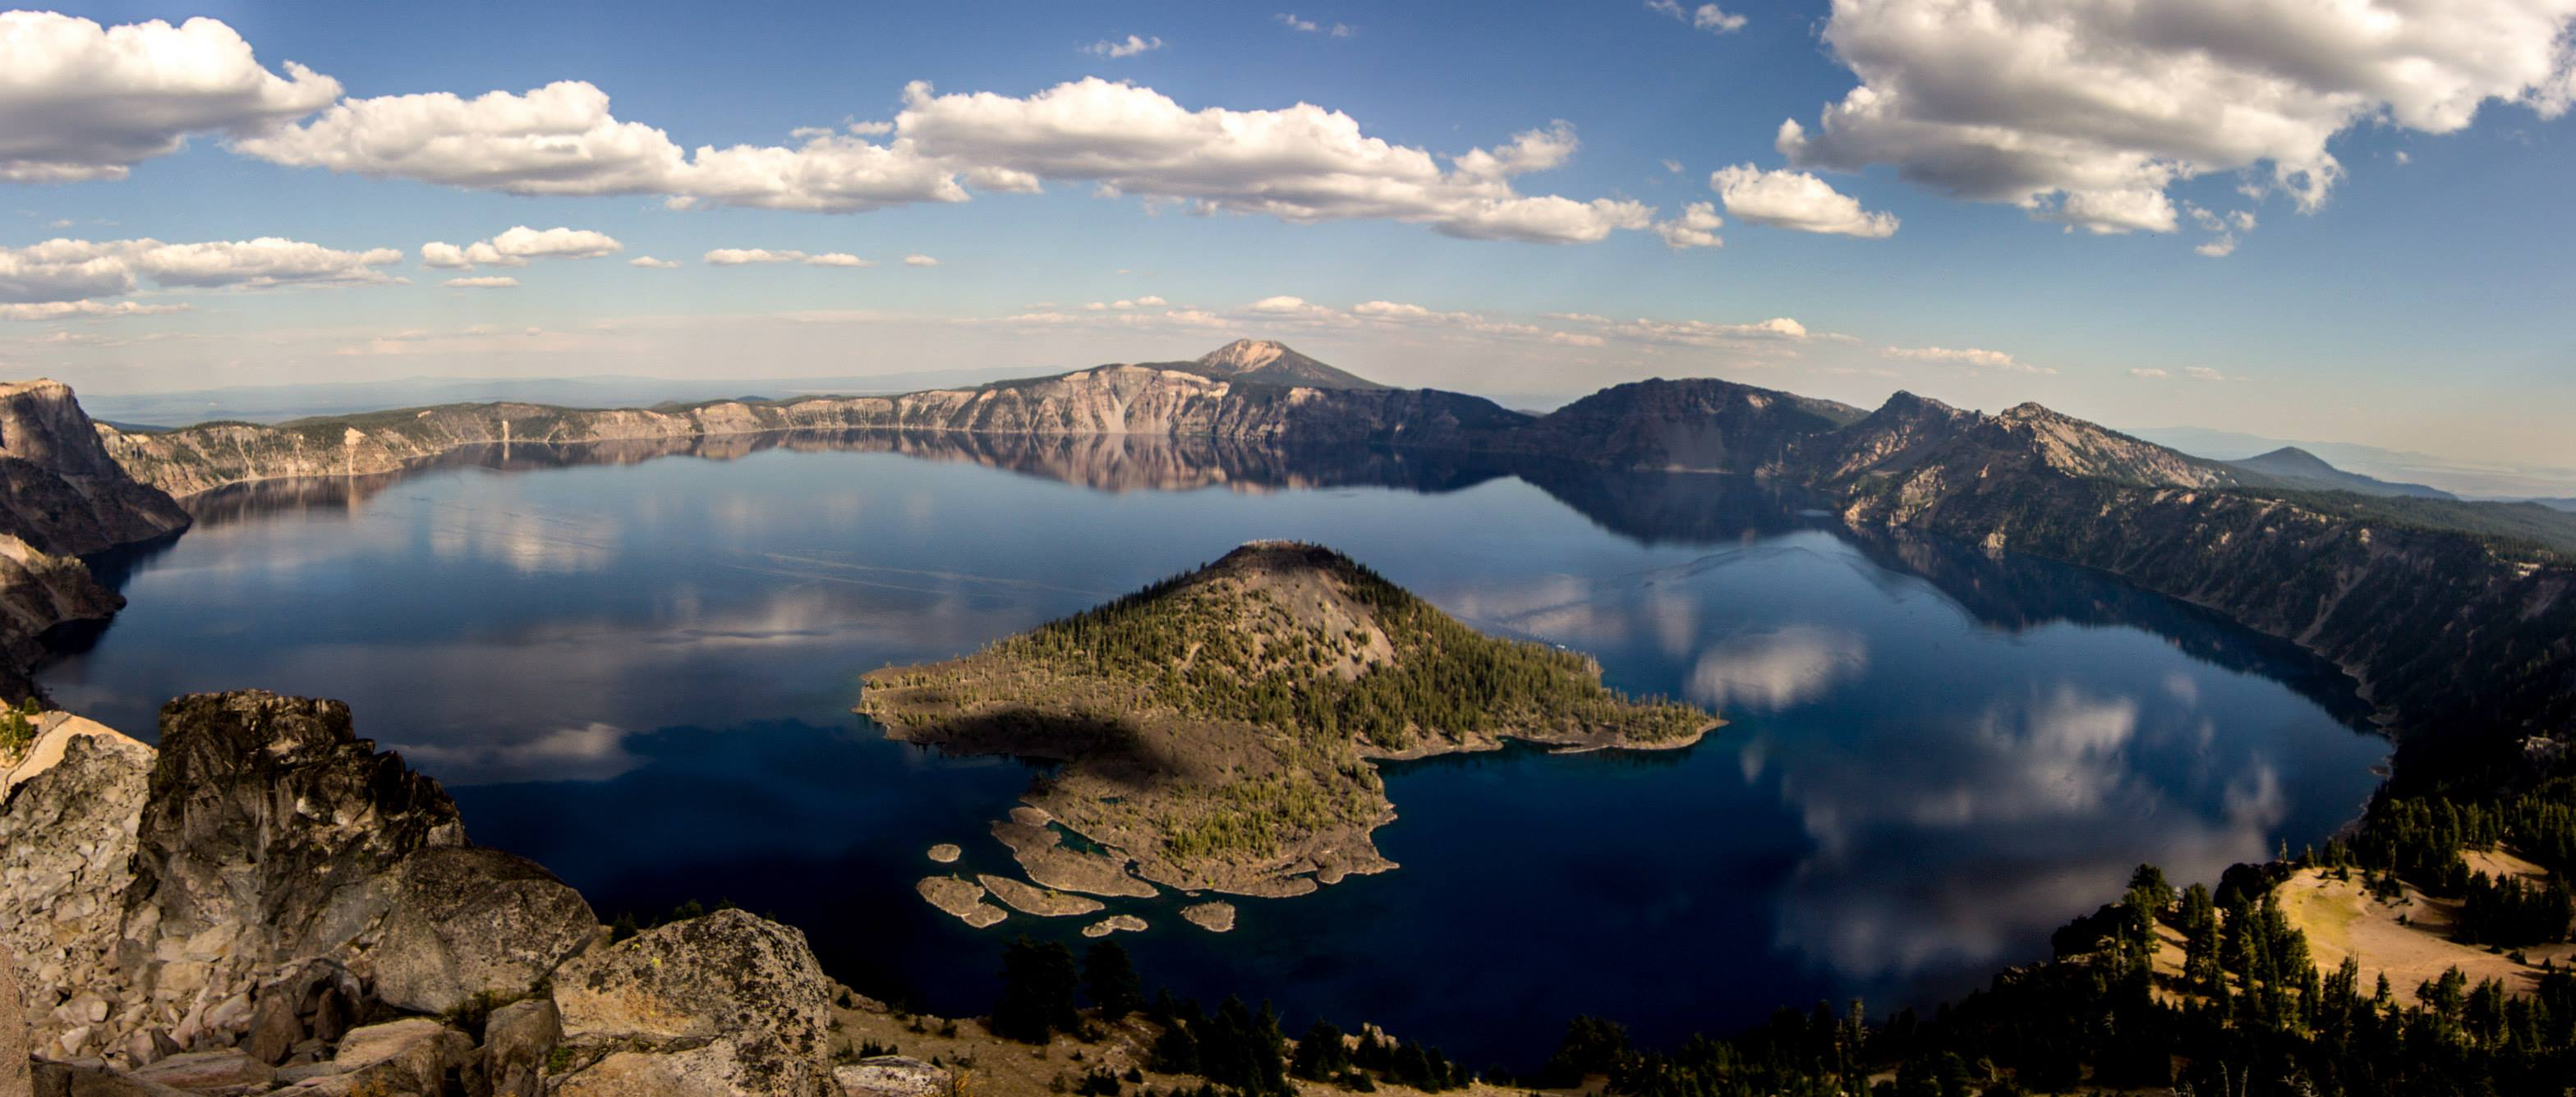 Earth Crater Lake wallpapers (Desktop, Phone, Tablet) - Awesome ...